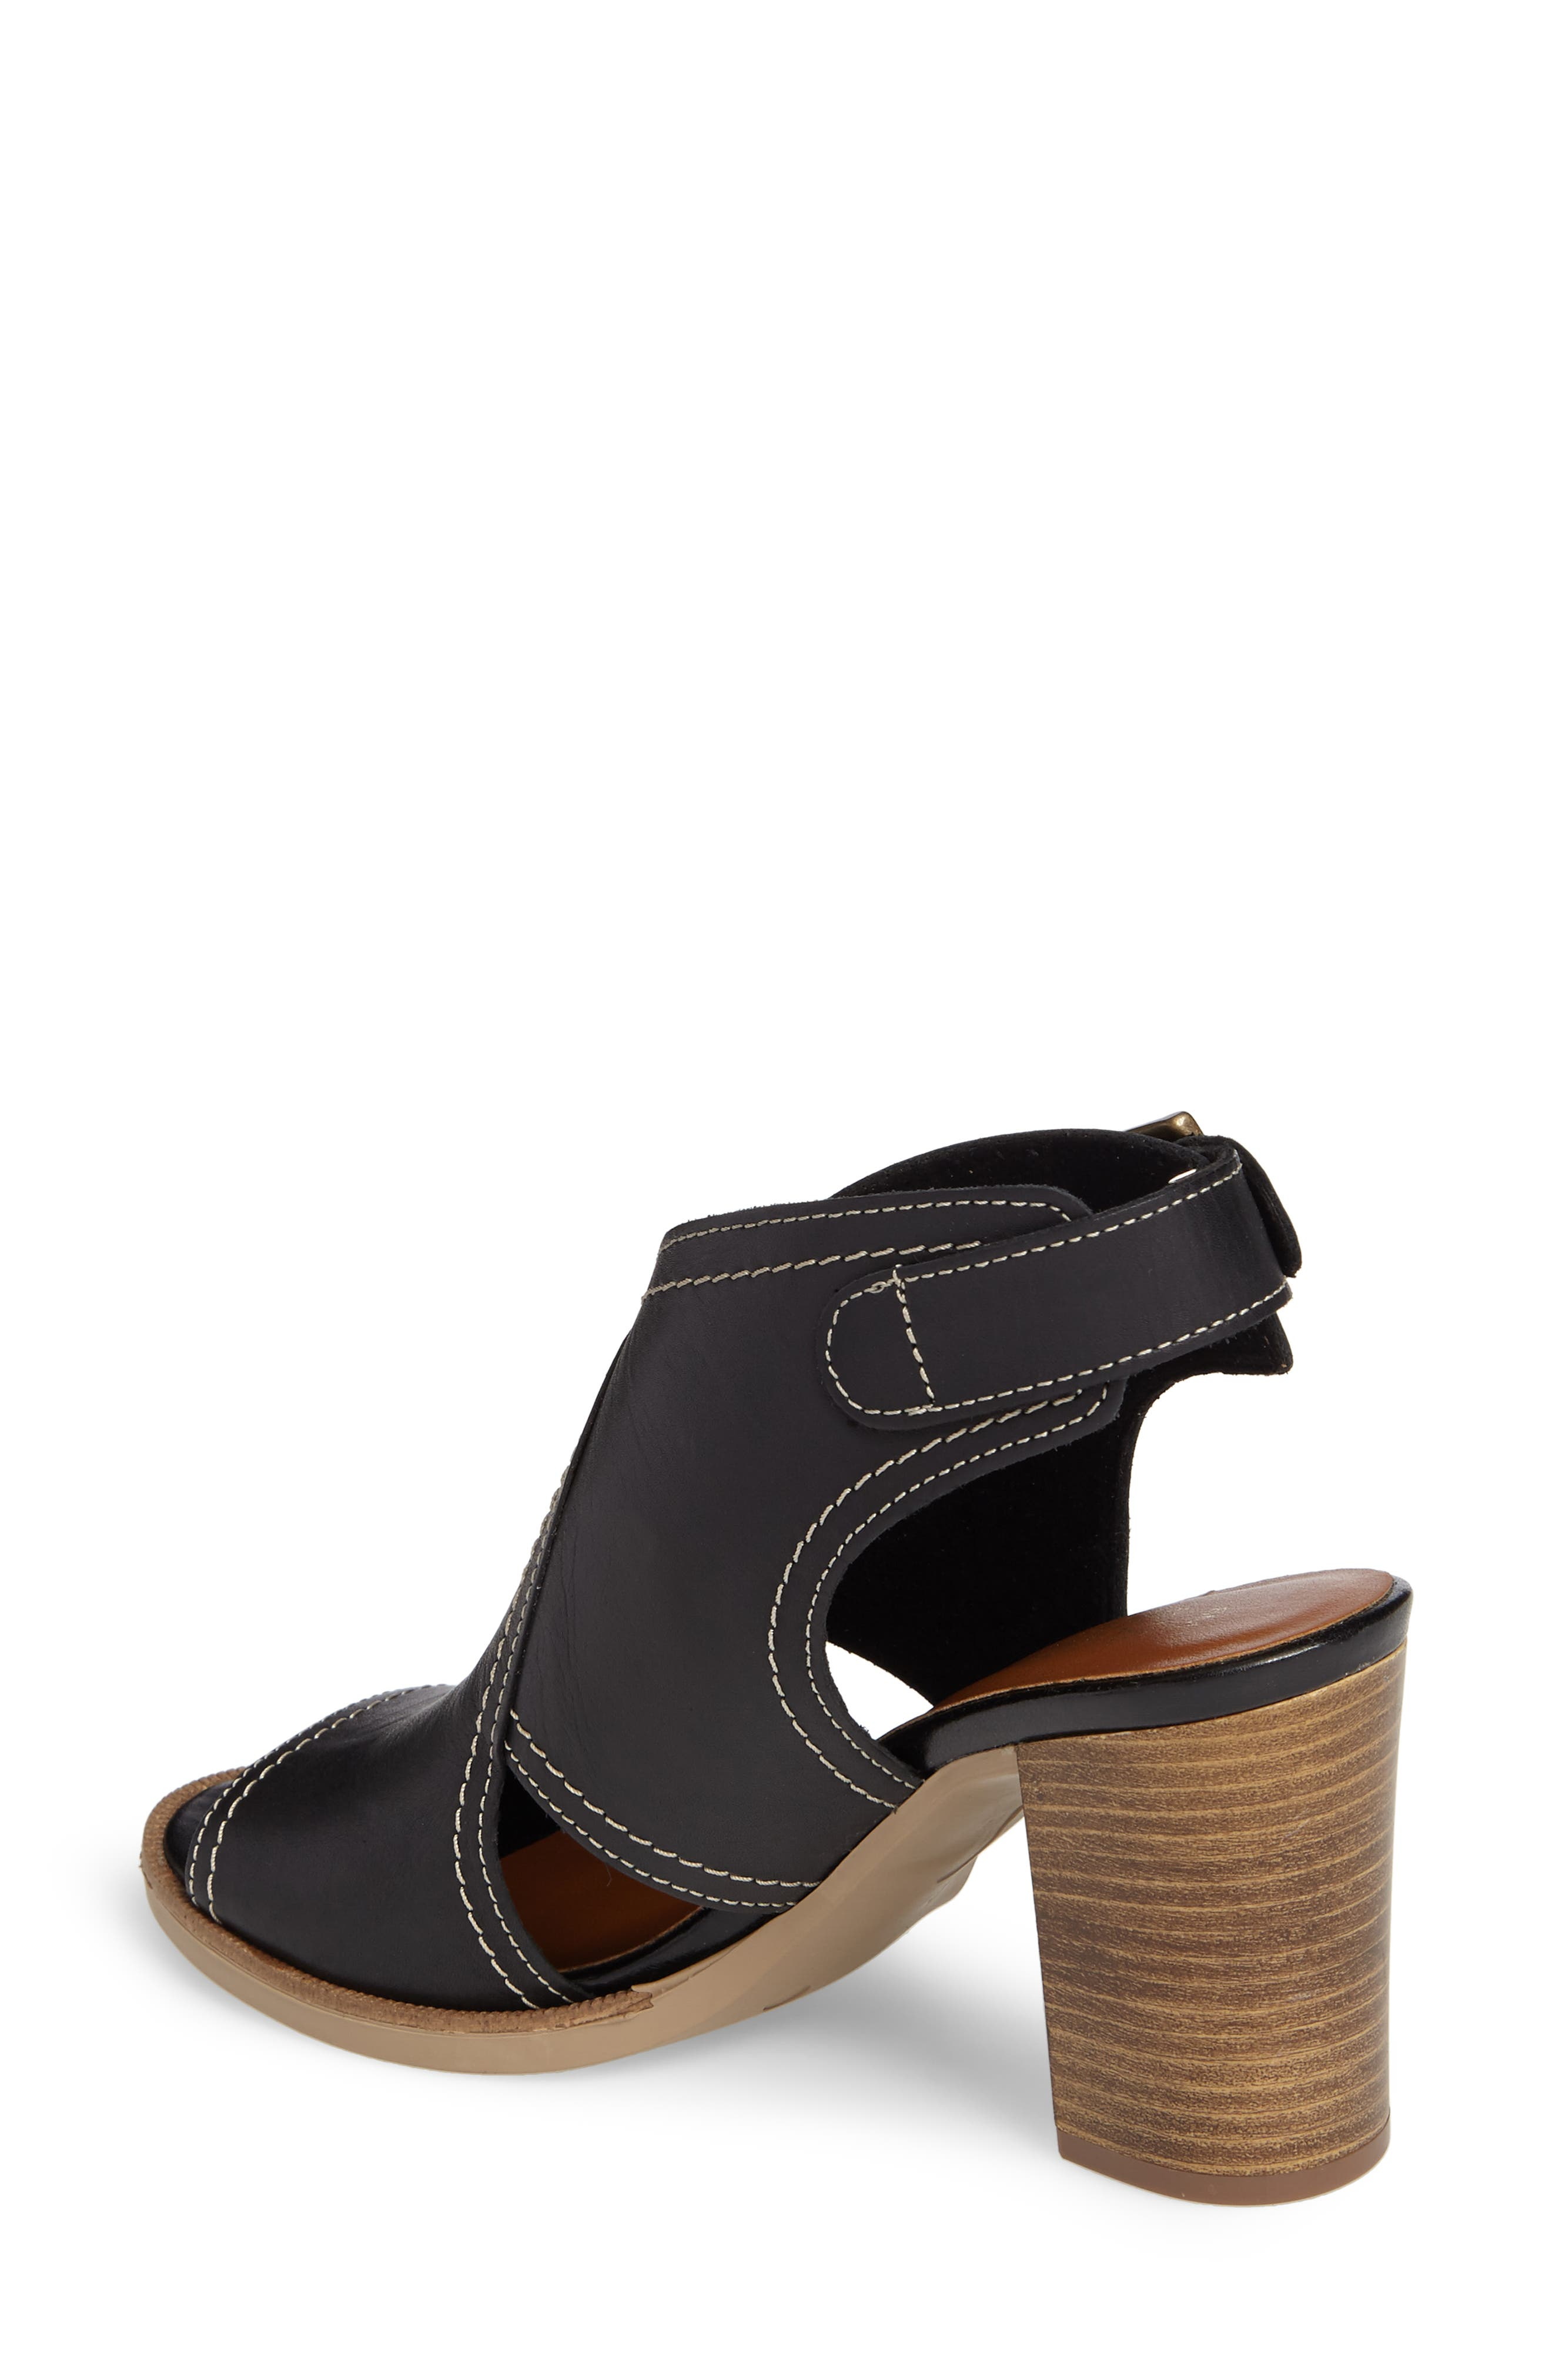 Viv Block Heel Sandal,                             Alternate thumbnail 2, color,                             001